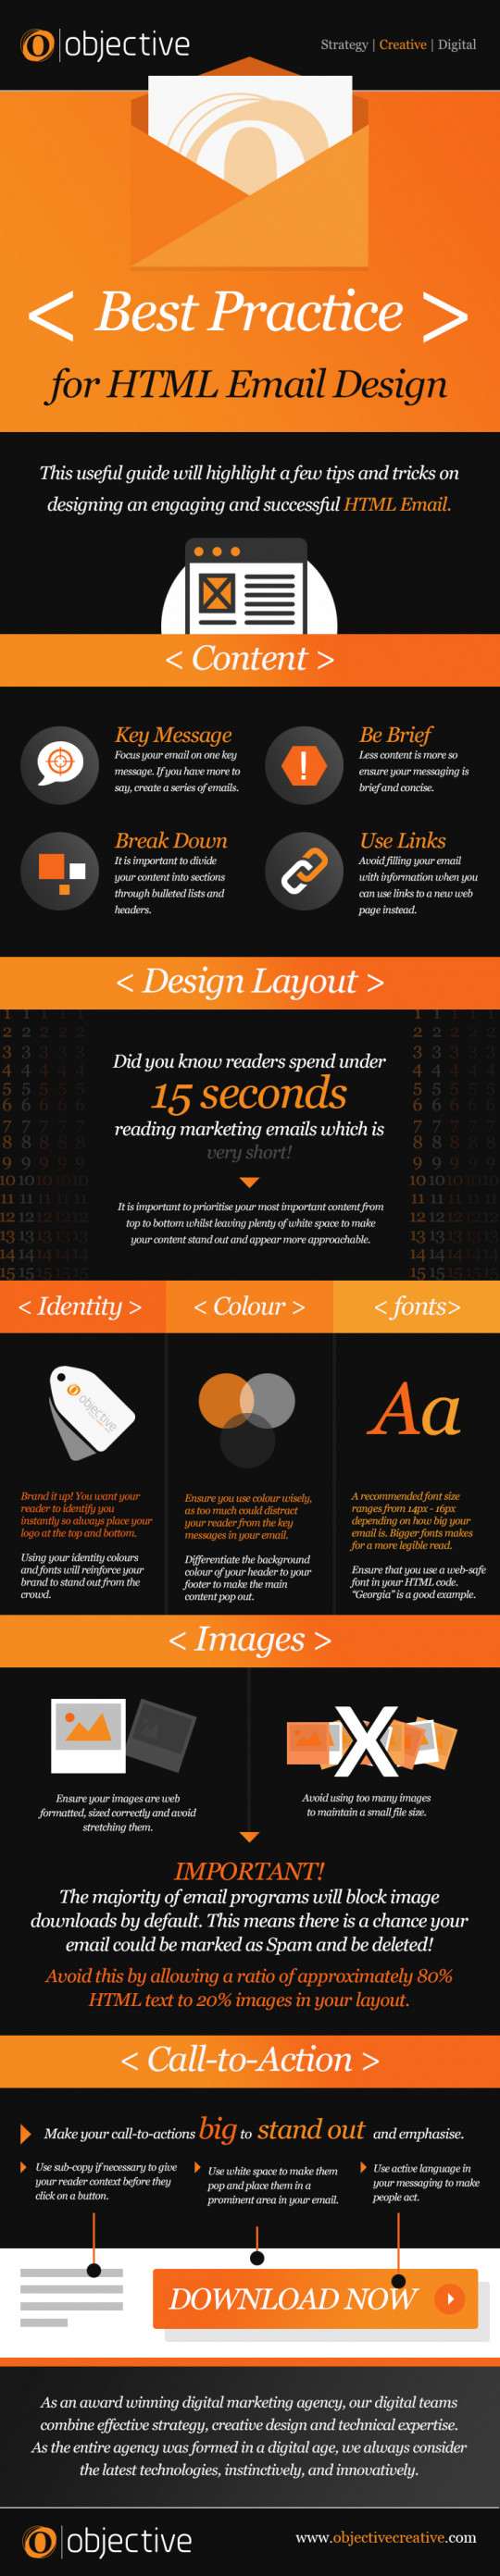 Best Practice for HTML Email Design